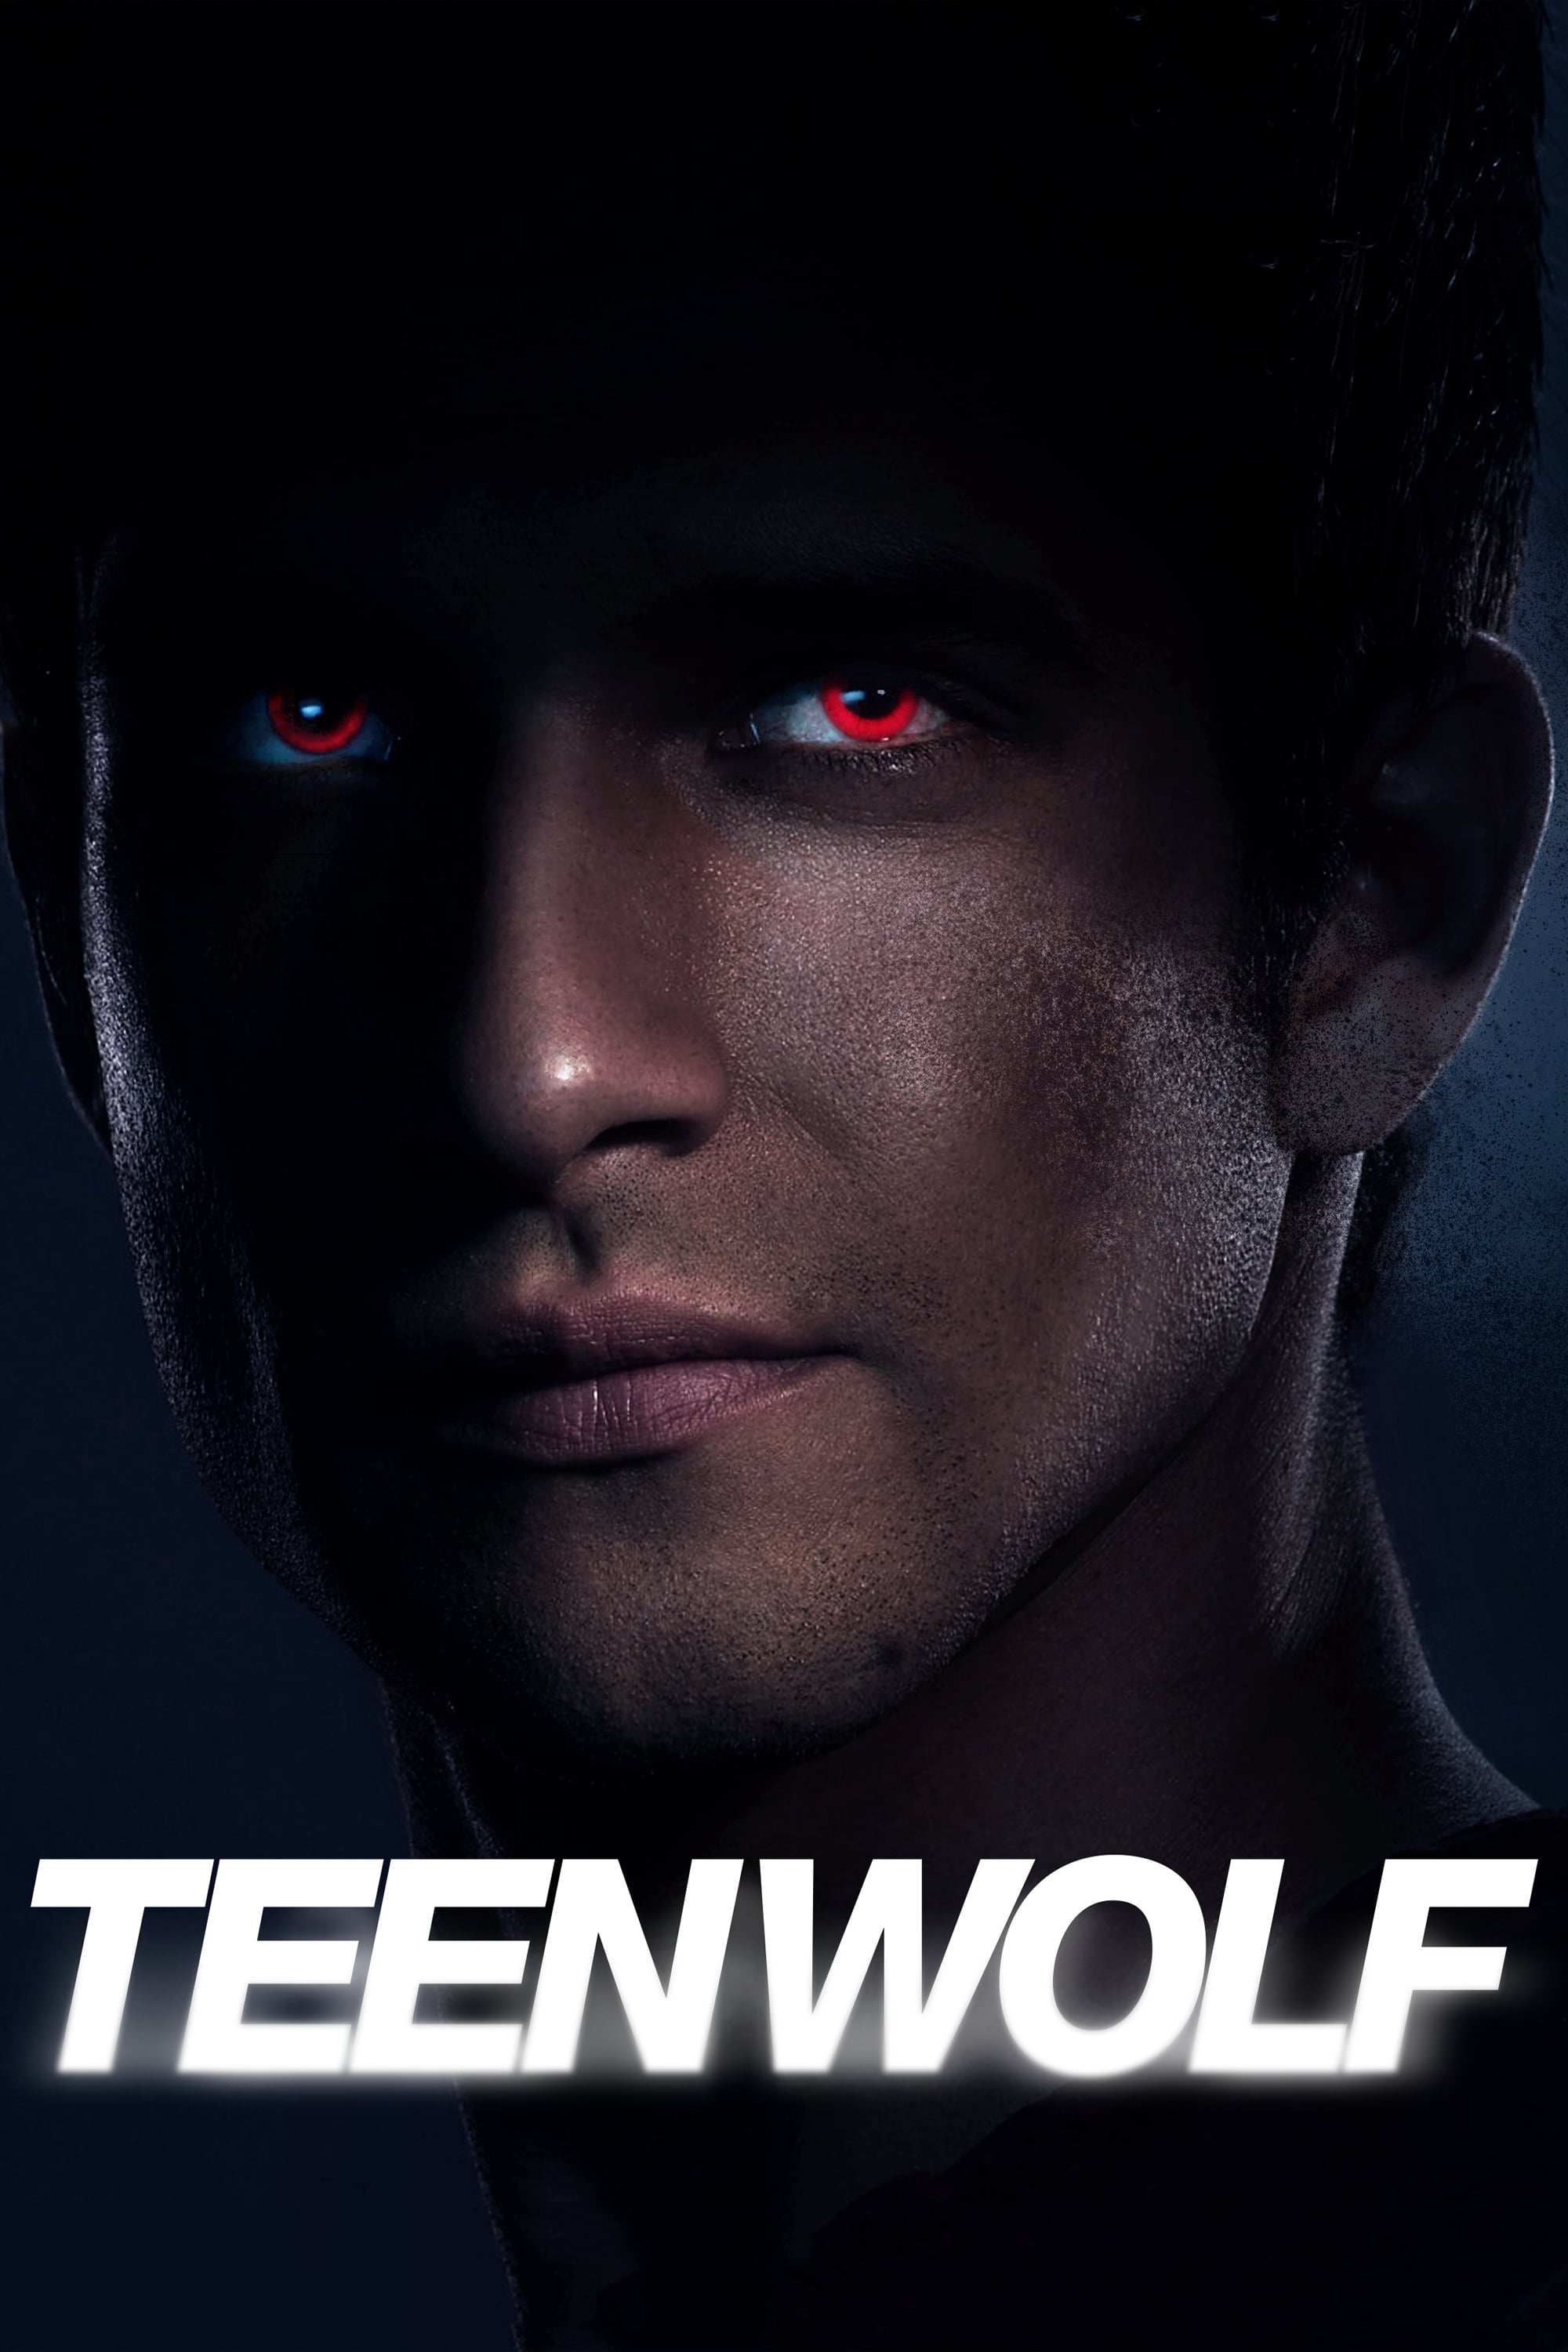 Teen Wolf Season 4 Episode 6